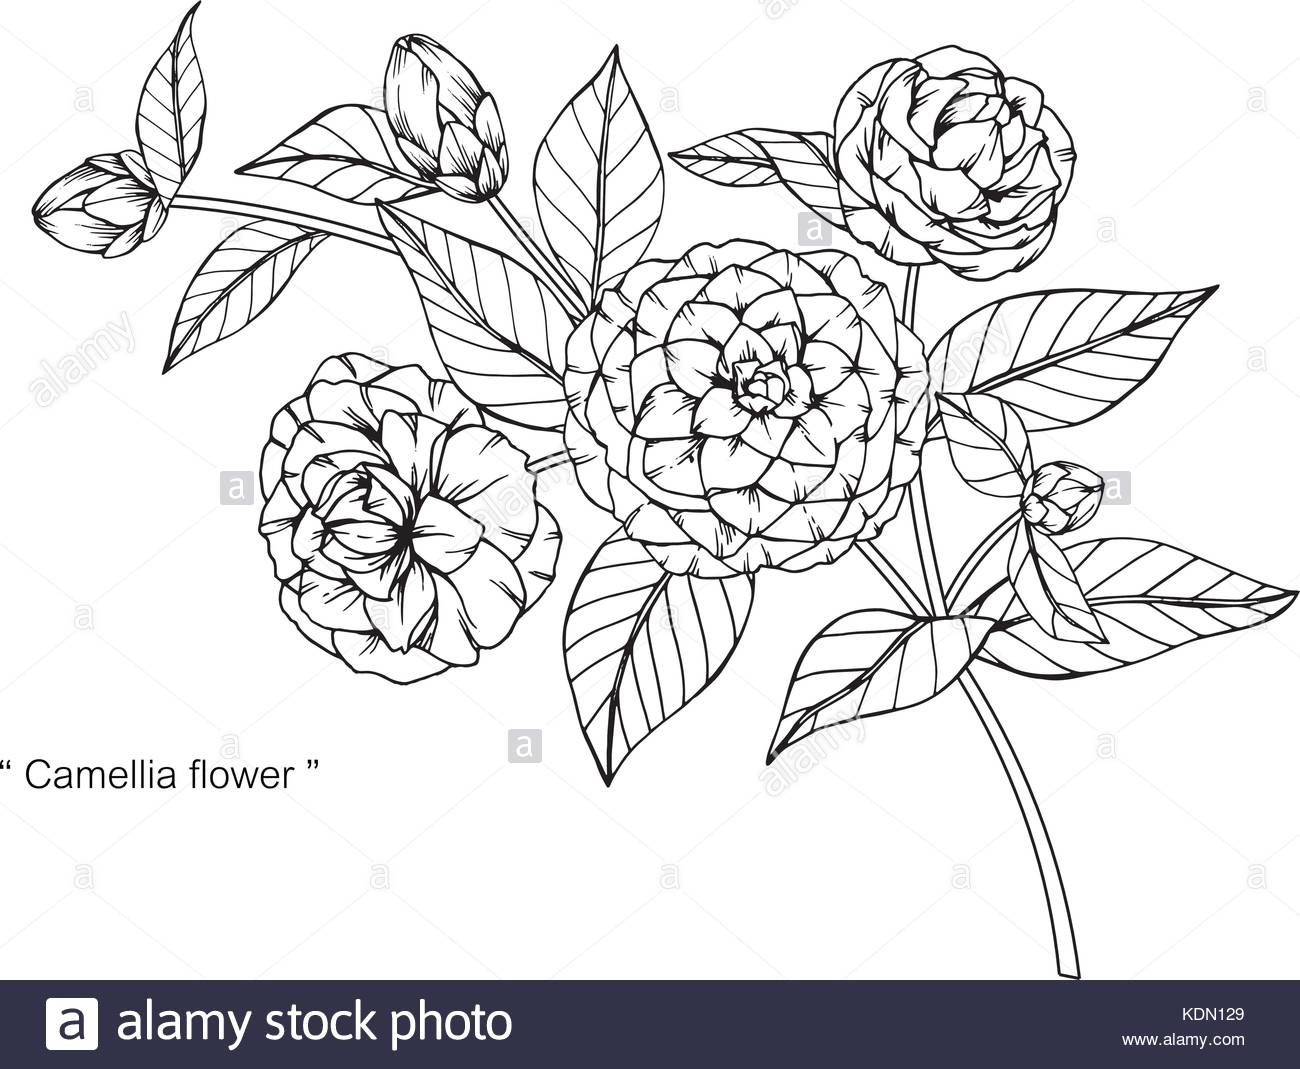 1300x1069 Camellia Flower Drawing Illustration. Black And White With Line